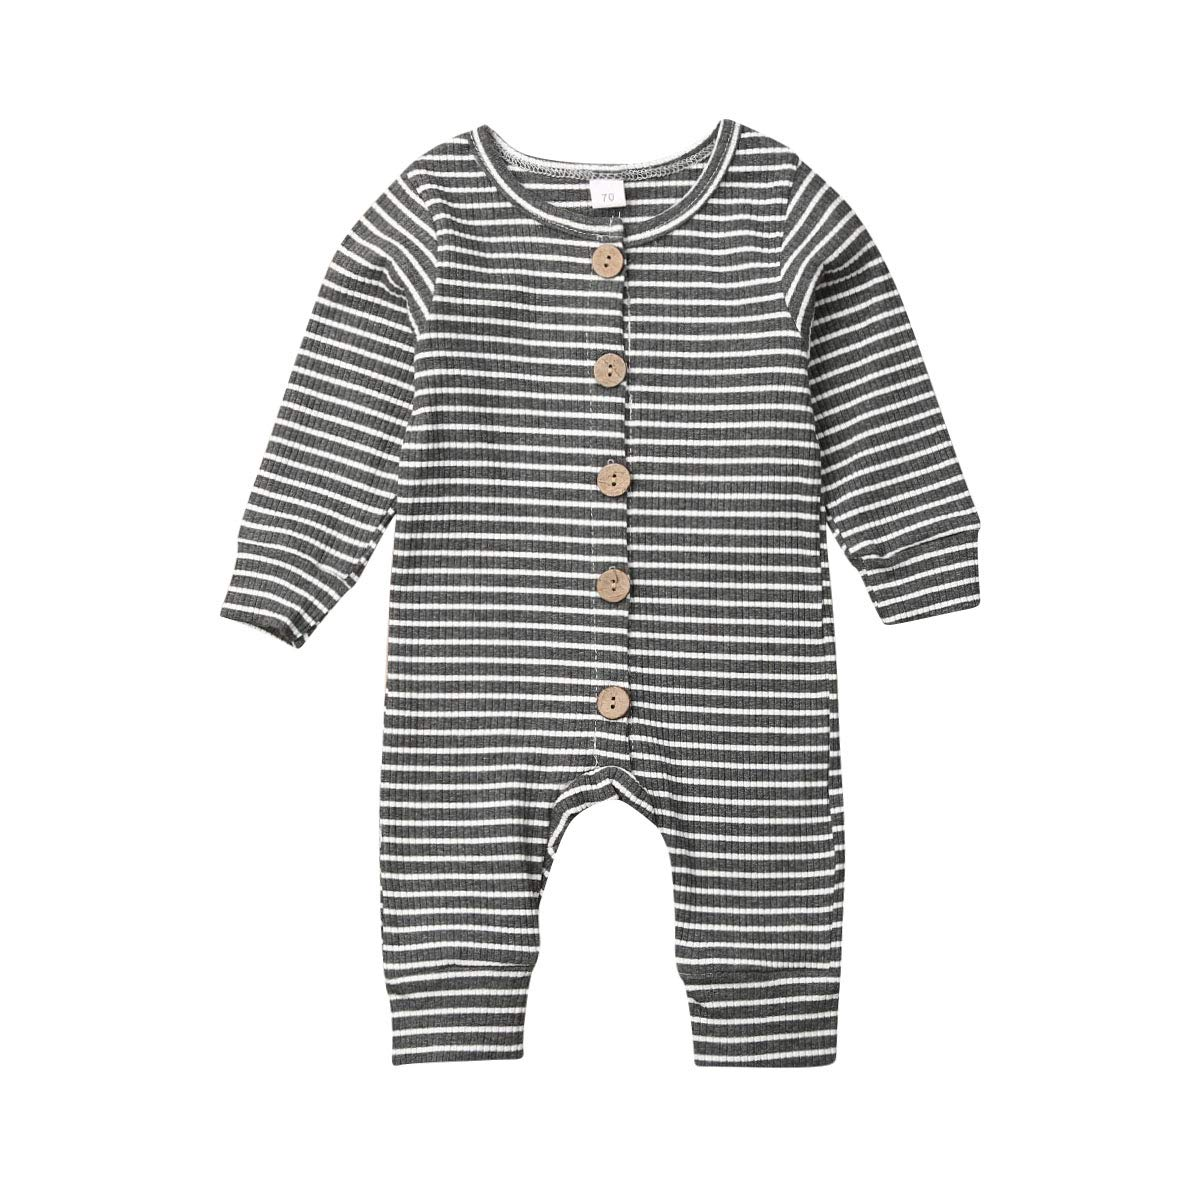 Infant Kids Clothing Baby Boys Girls Cute Stripe Hooded Long Sleeve Romper Jumpsuit Bodysuit Top Outfits Clothes